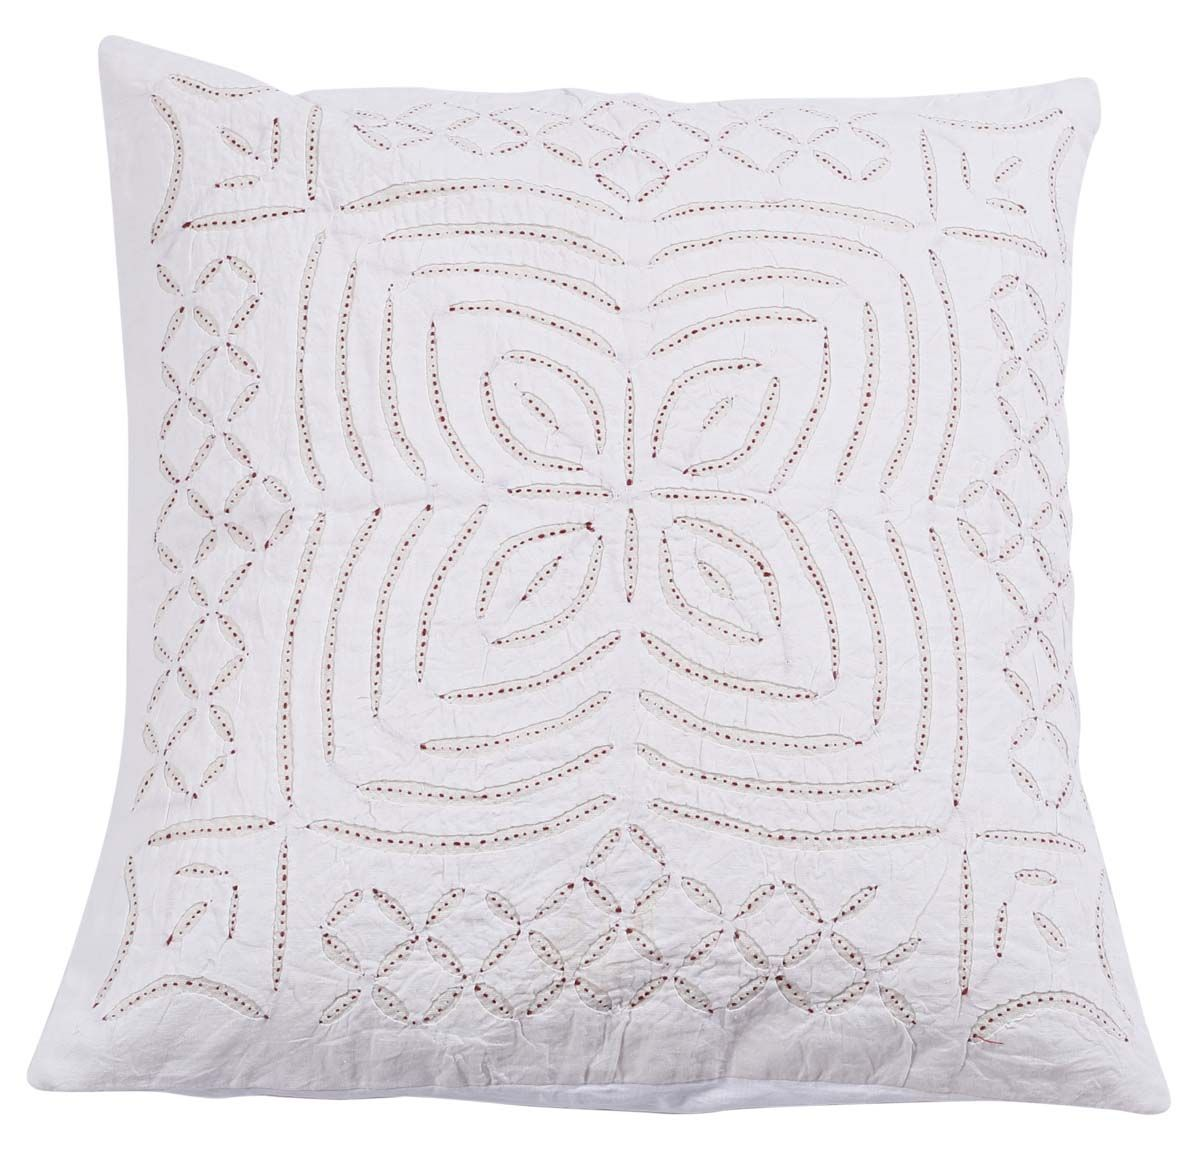 Bulk Wholesale 16x16 Pure Cotton Cushion Cover Hand Stitched White Throw Pillow Cover With With White Cushion Covers White Throw Pillow Covers Throw Pillows